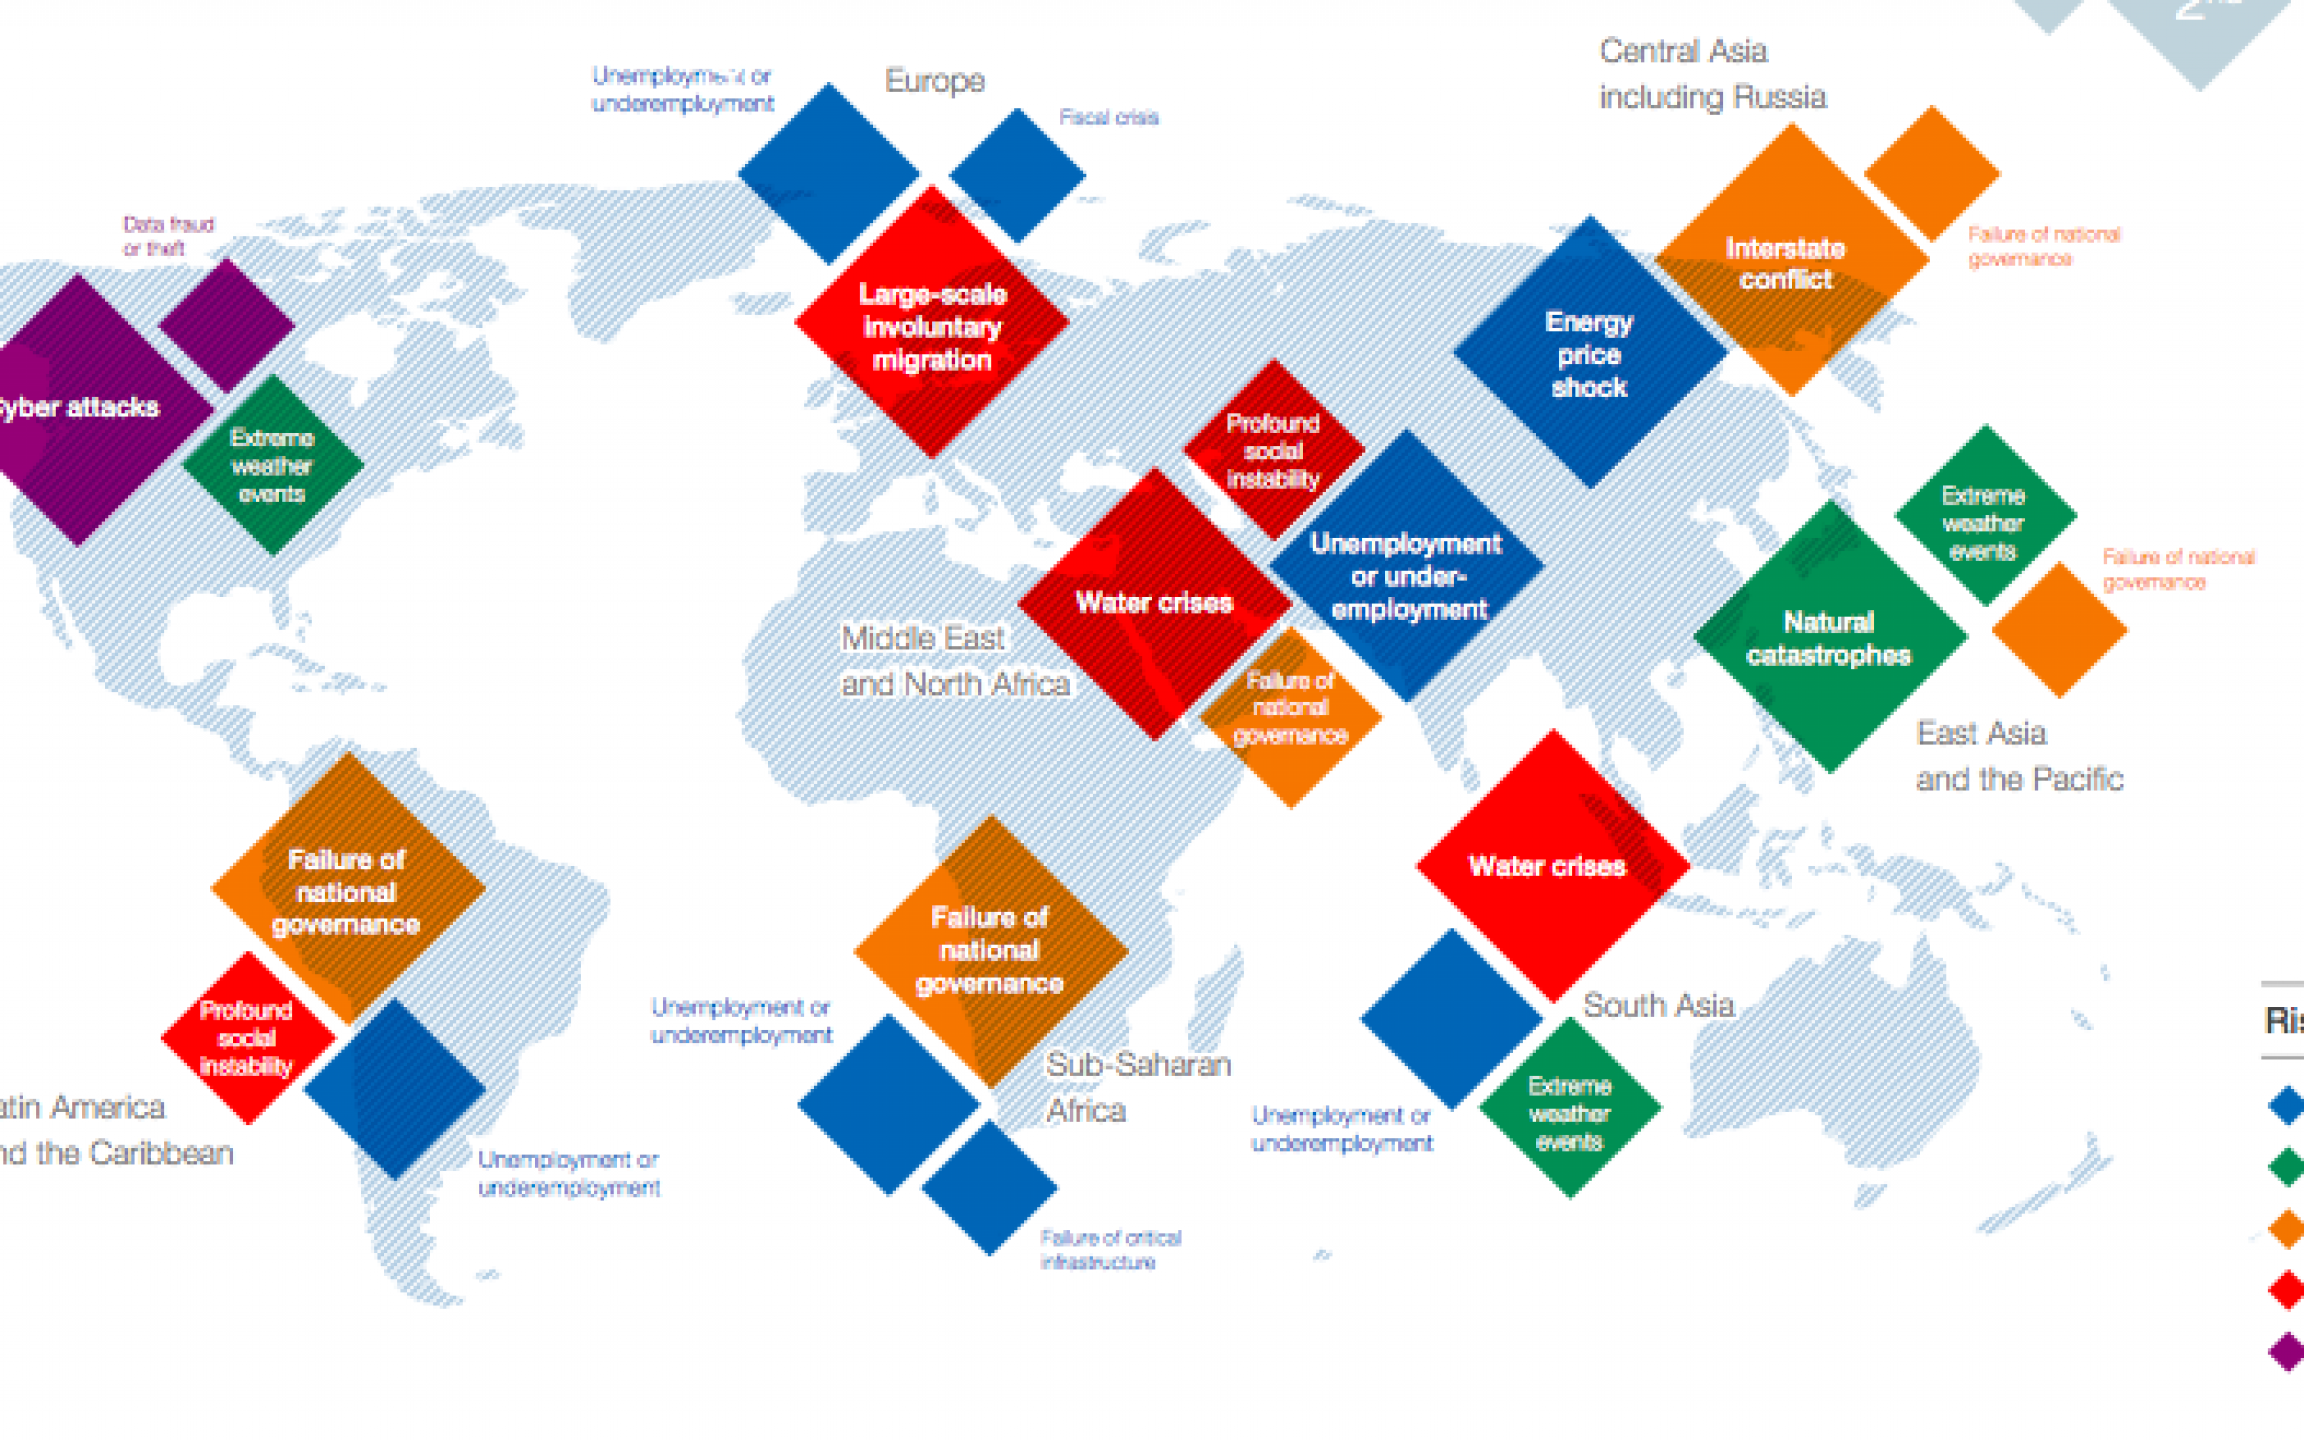 World Economic Forum: Highlights from Global Risks Report 2016